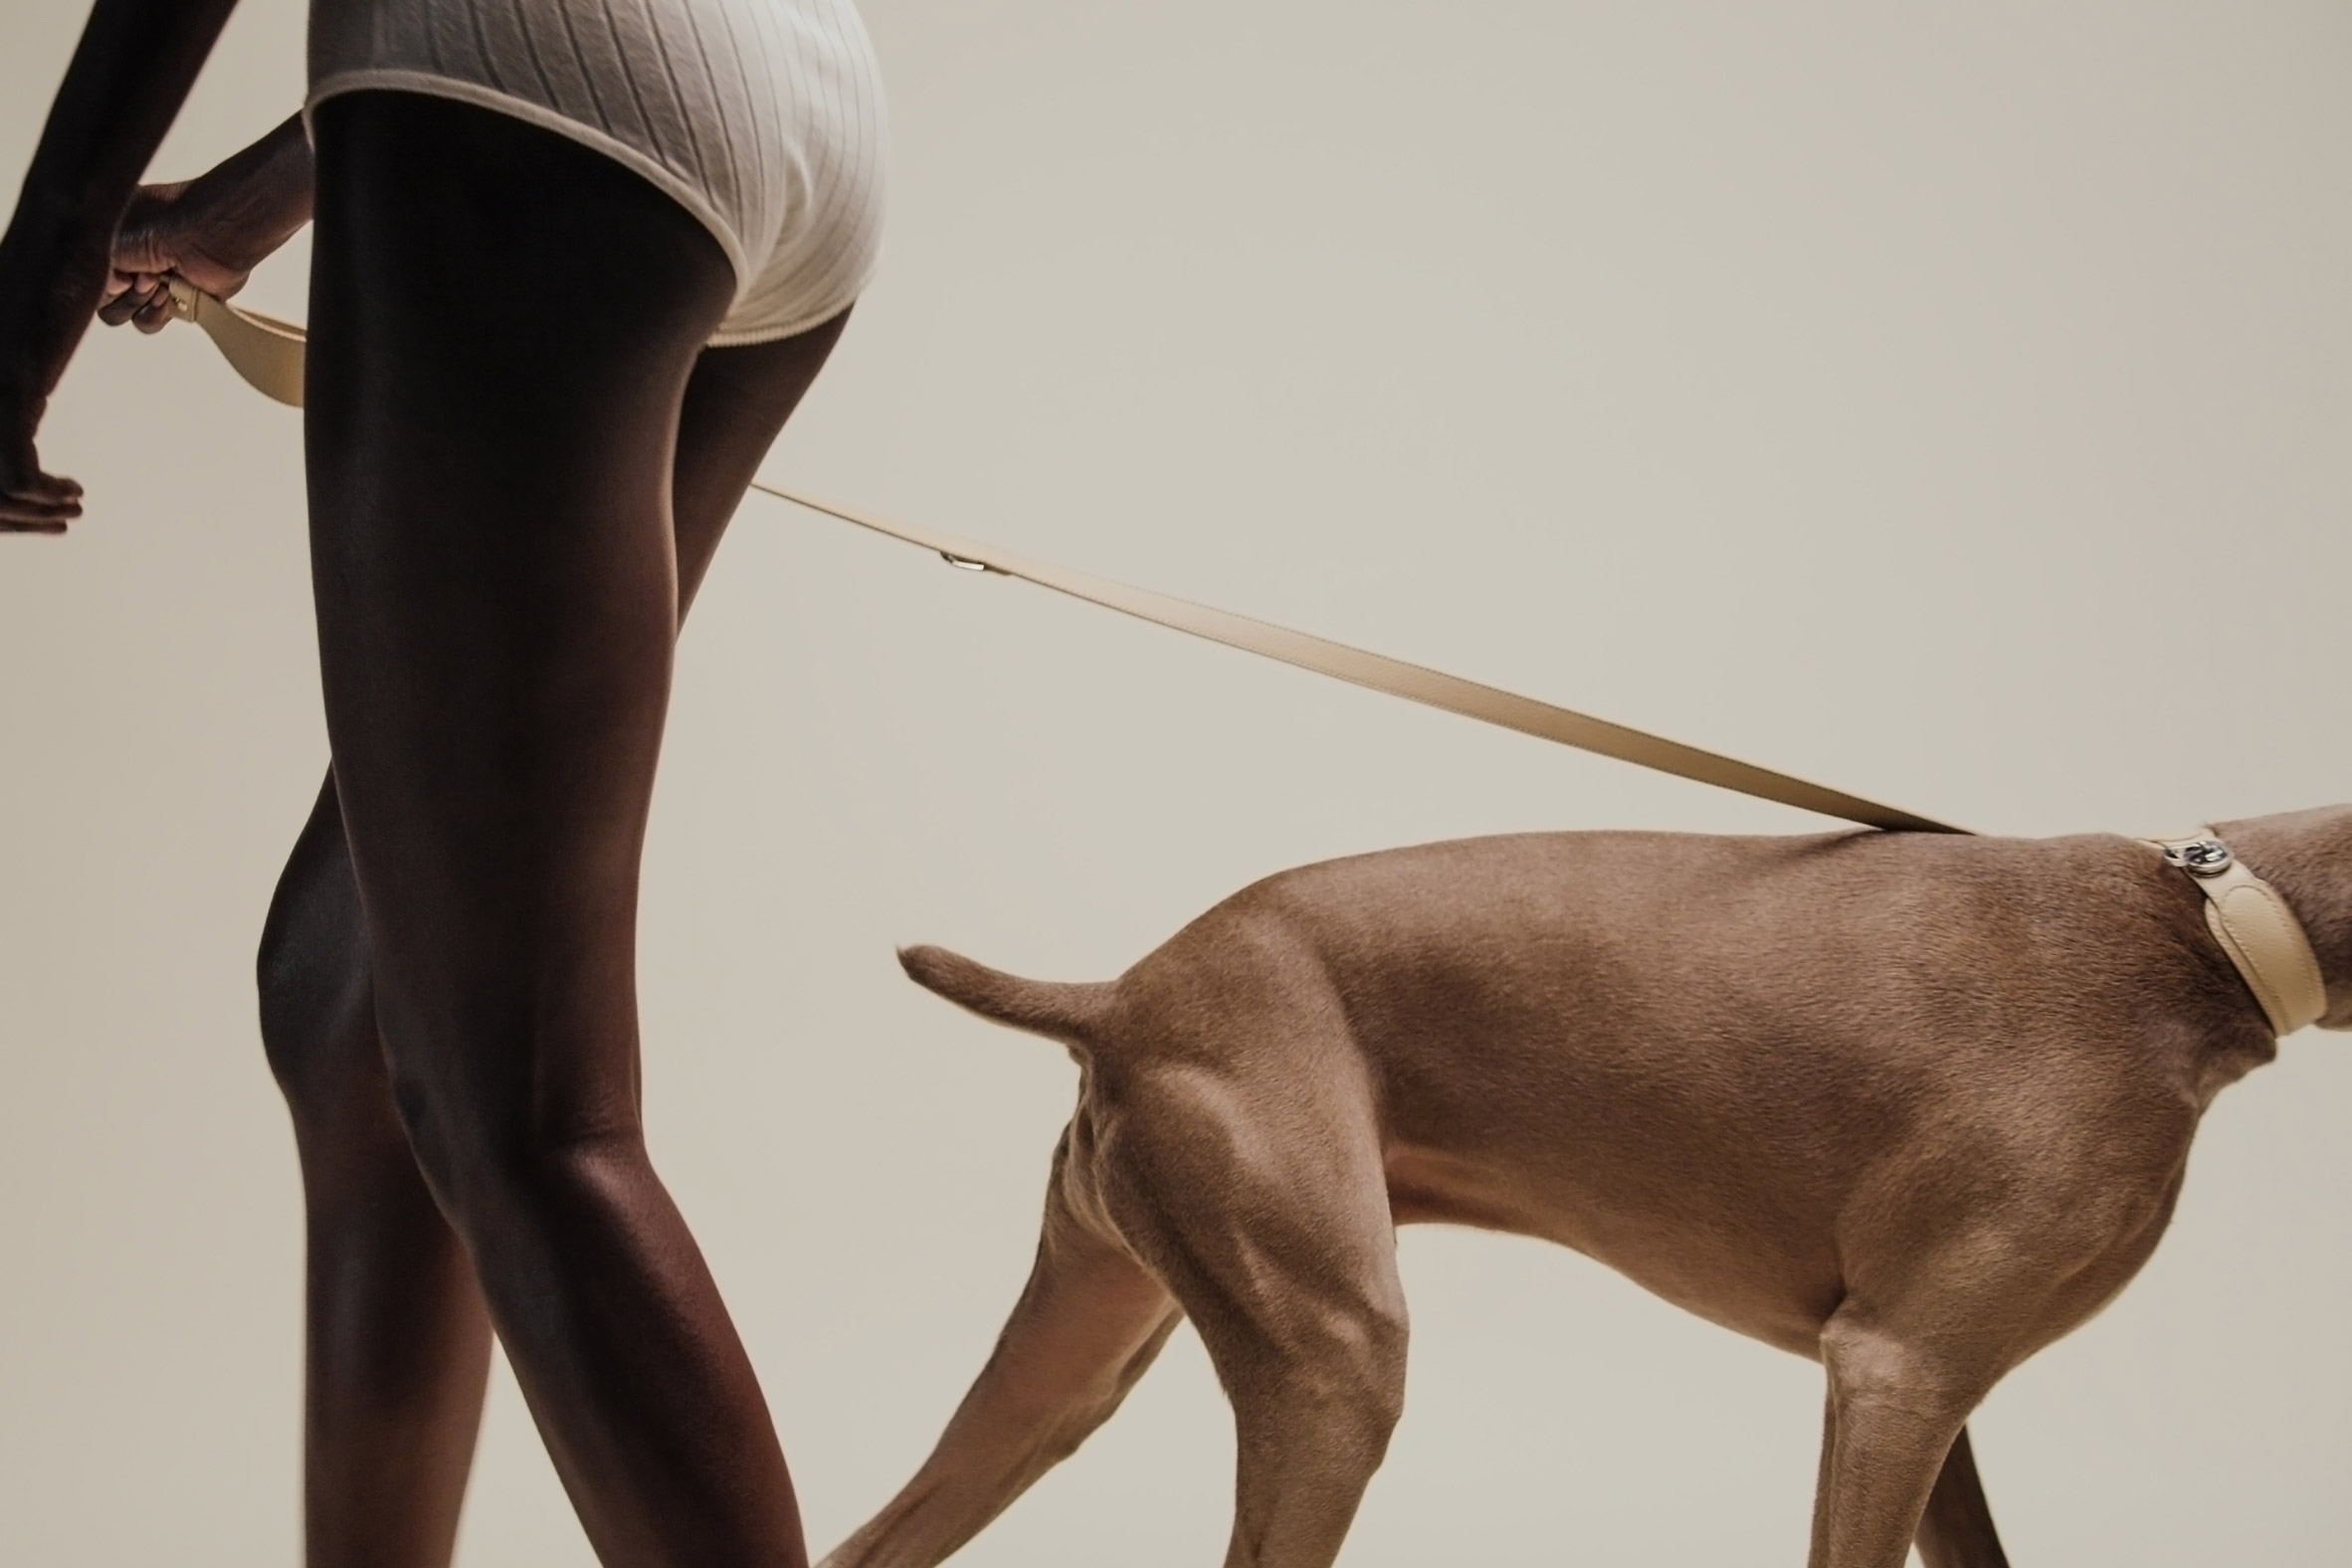 The Tascher leash and Dórro collar by Pagerie